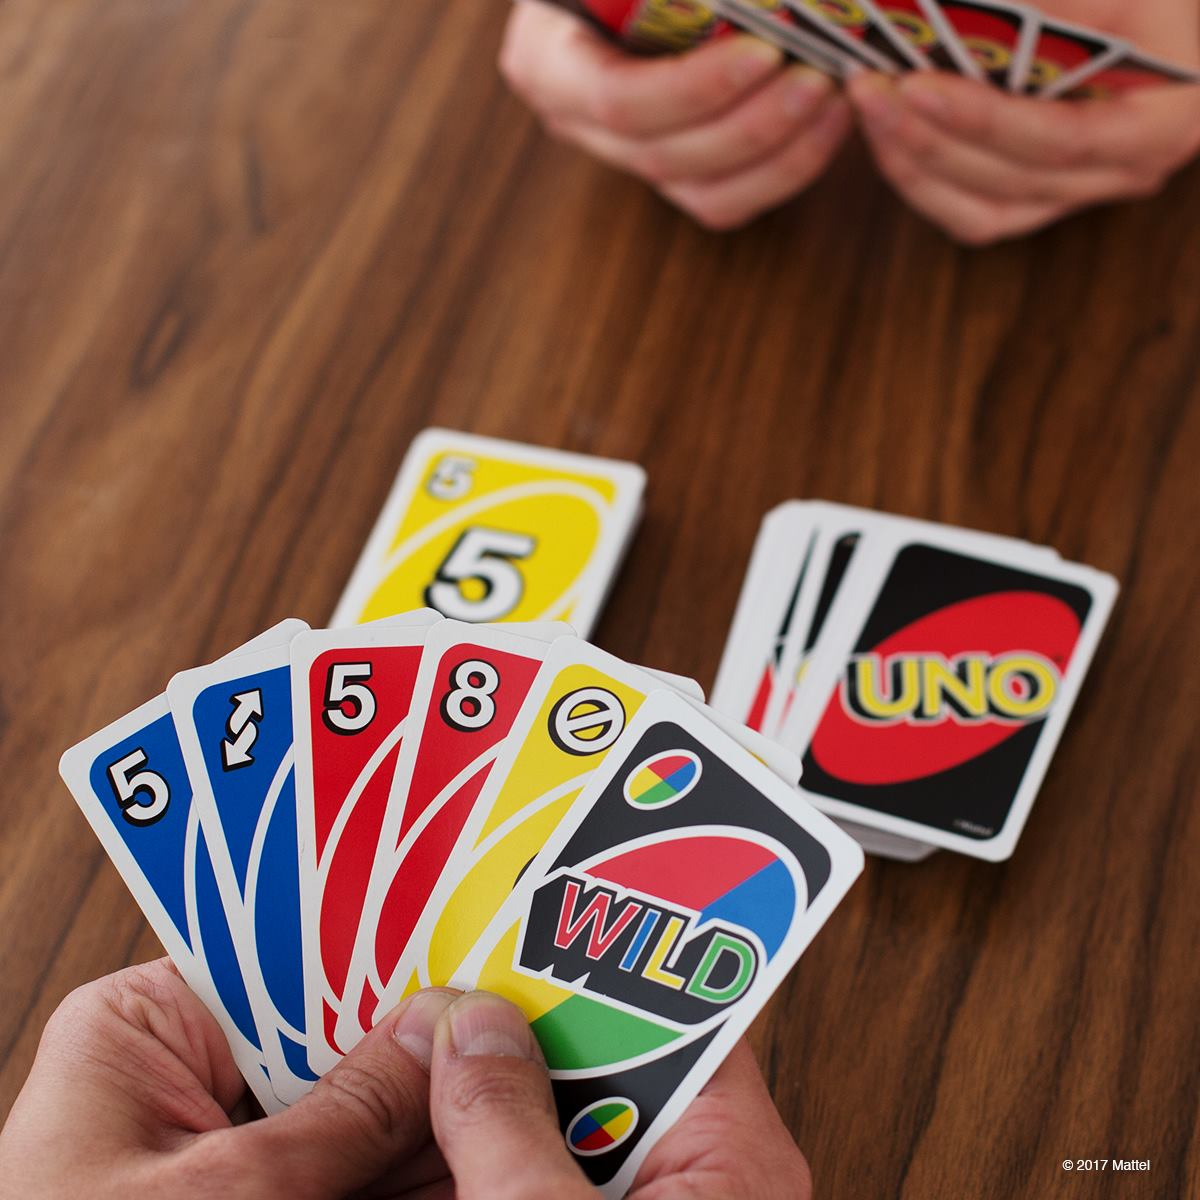 You've Got To Try This Uno Card Workout